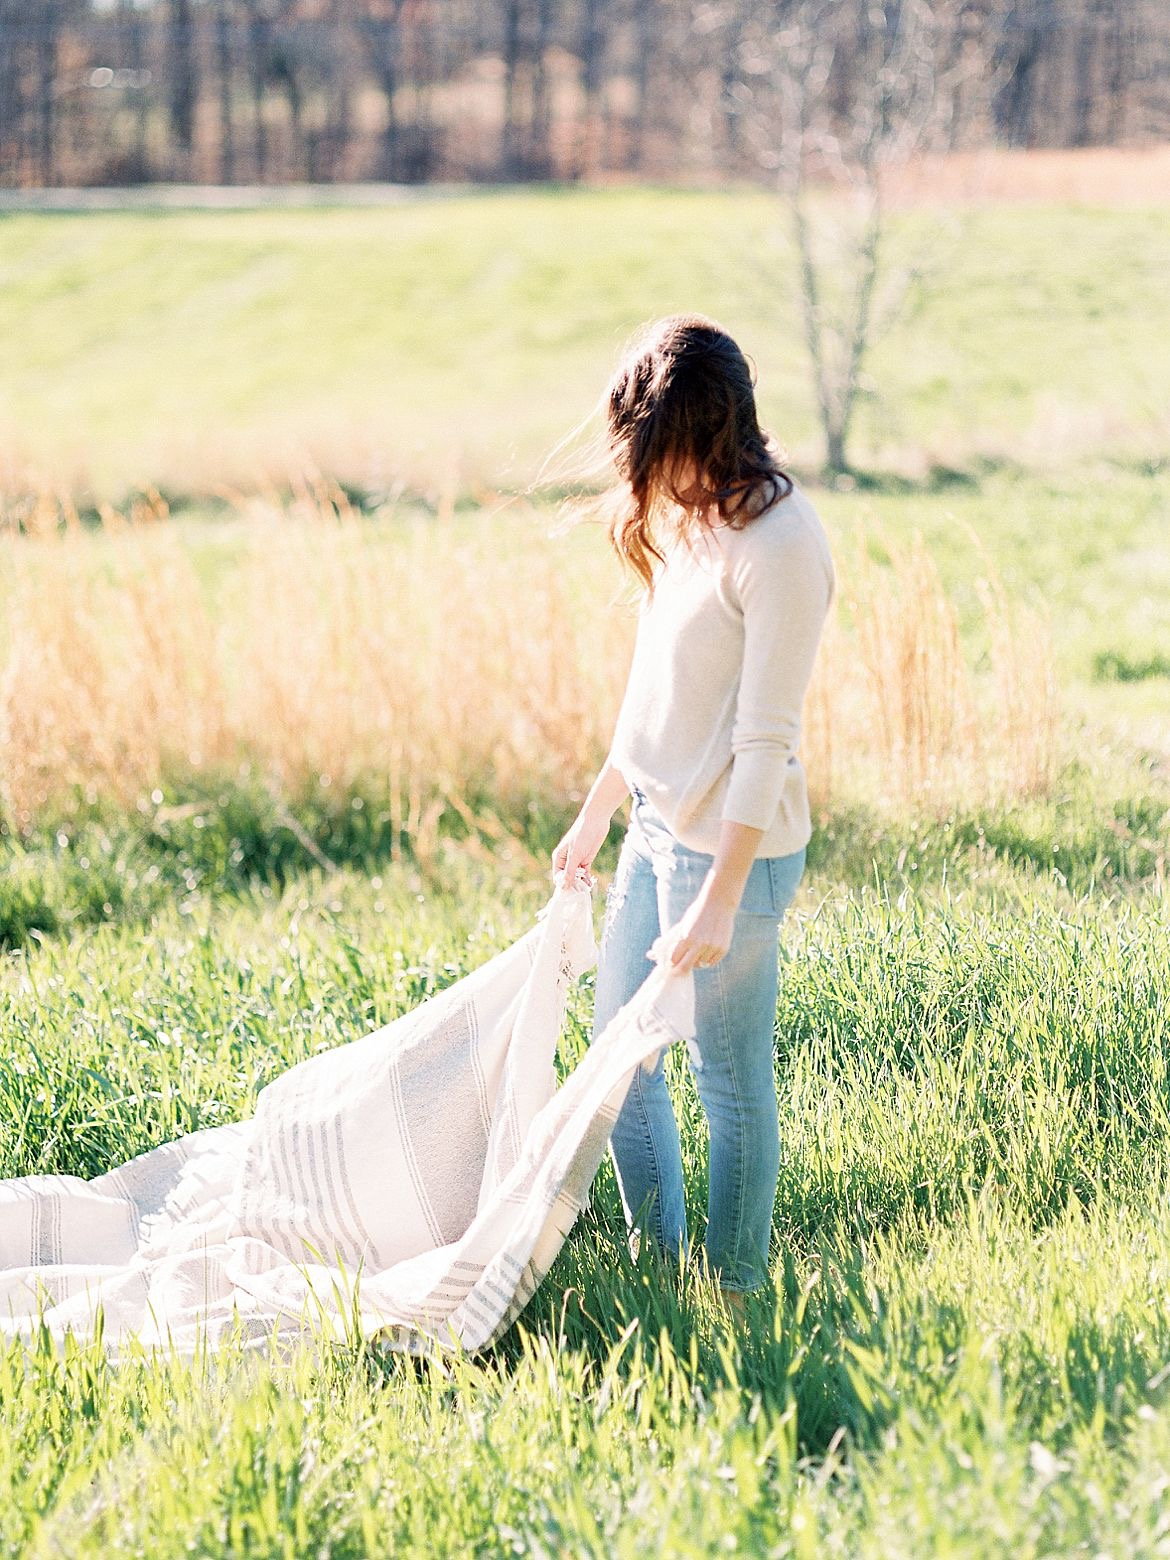 Romantic Outdoor Engagement Photography